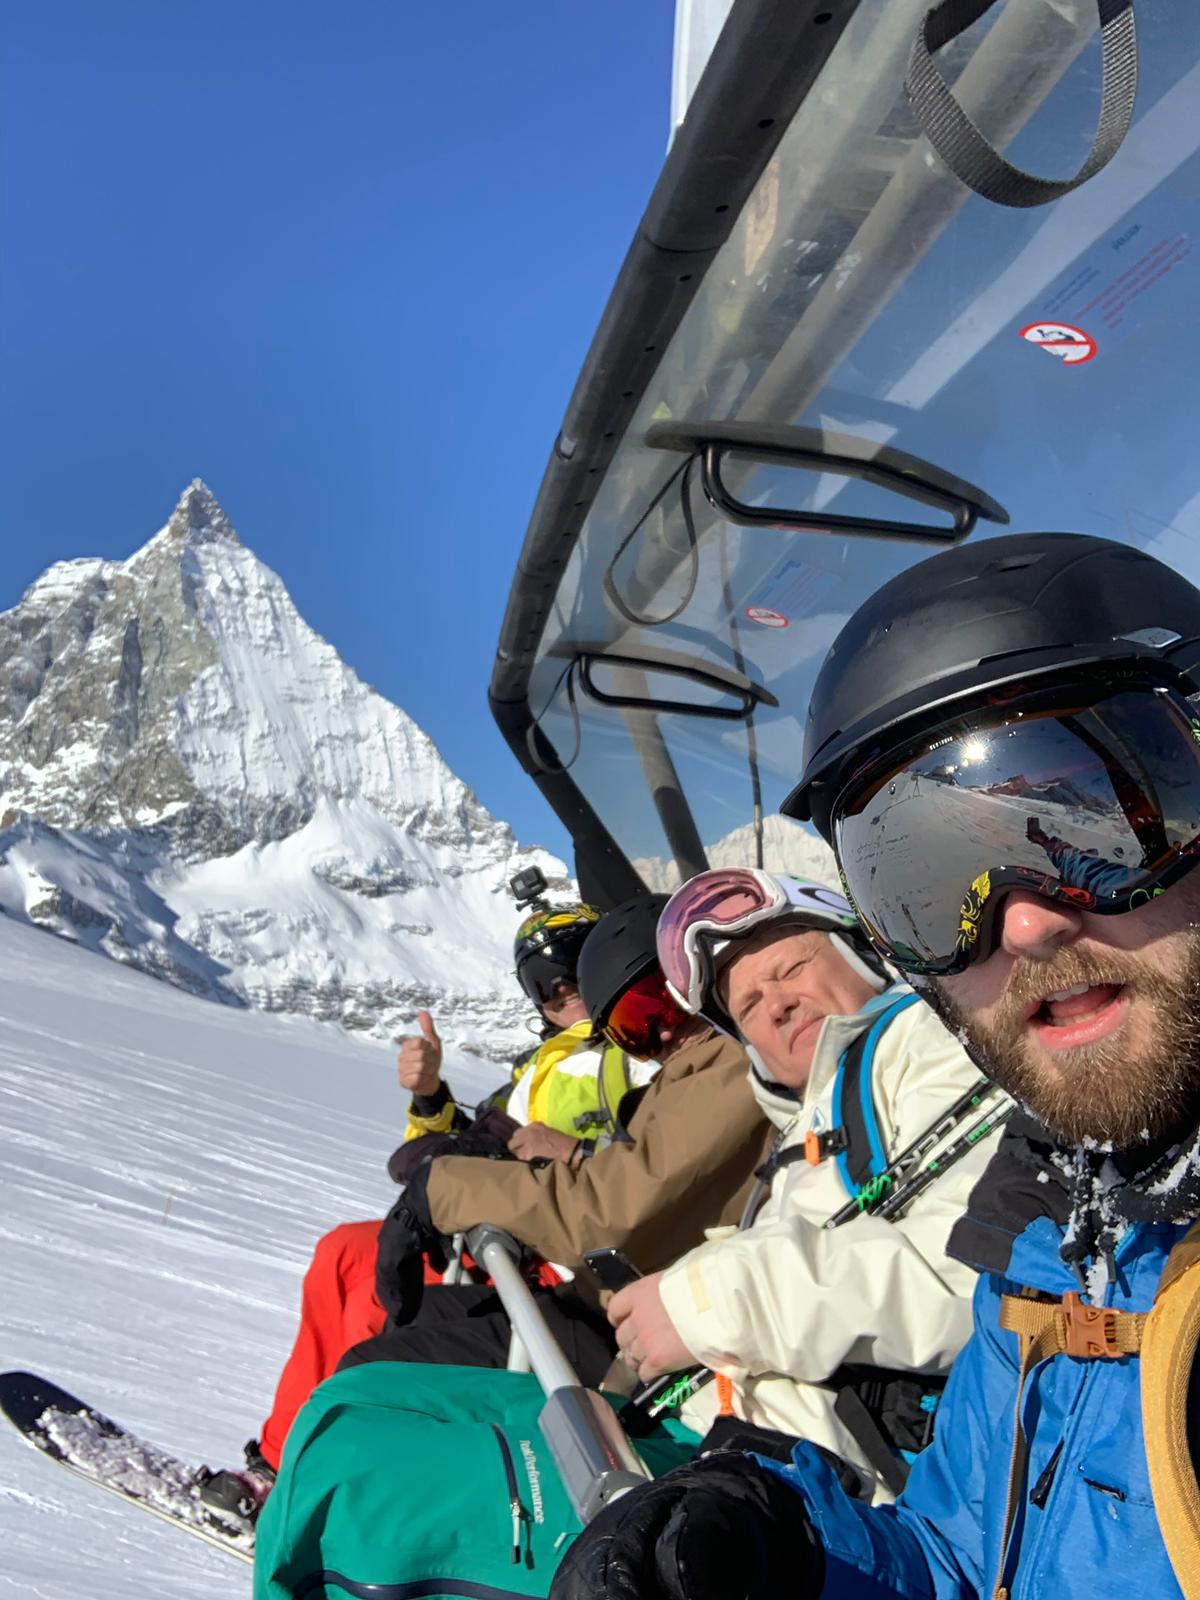 A group of FSCers on a chairlift with the Matterhorn in the background.